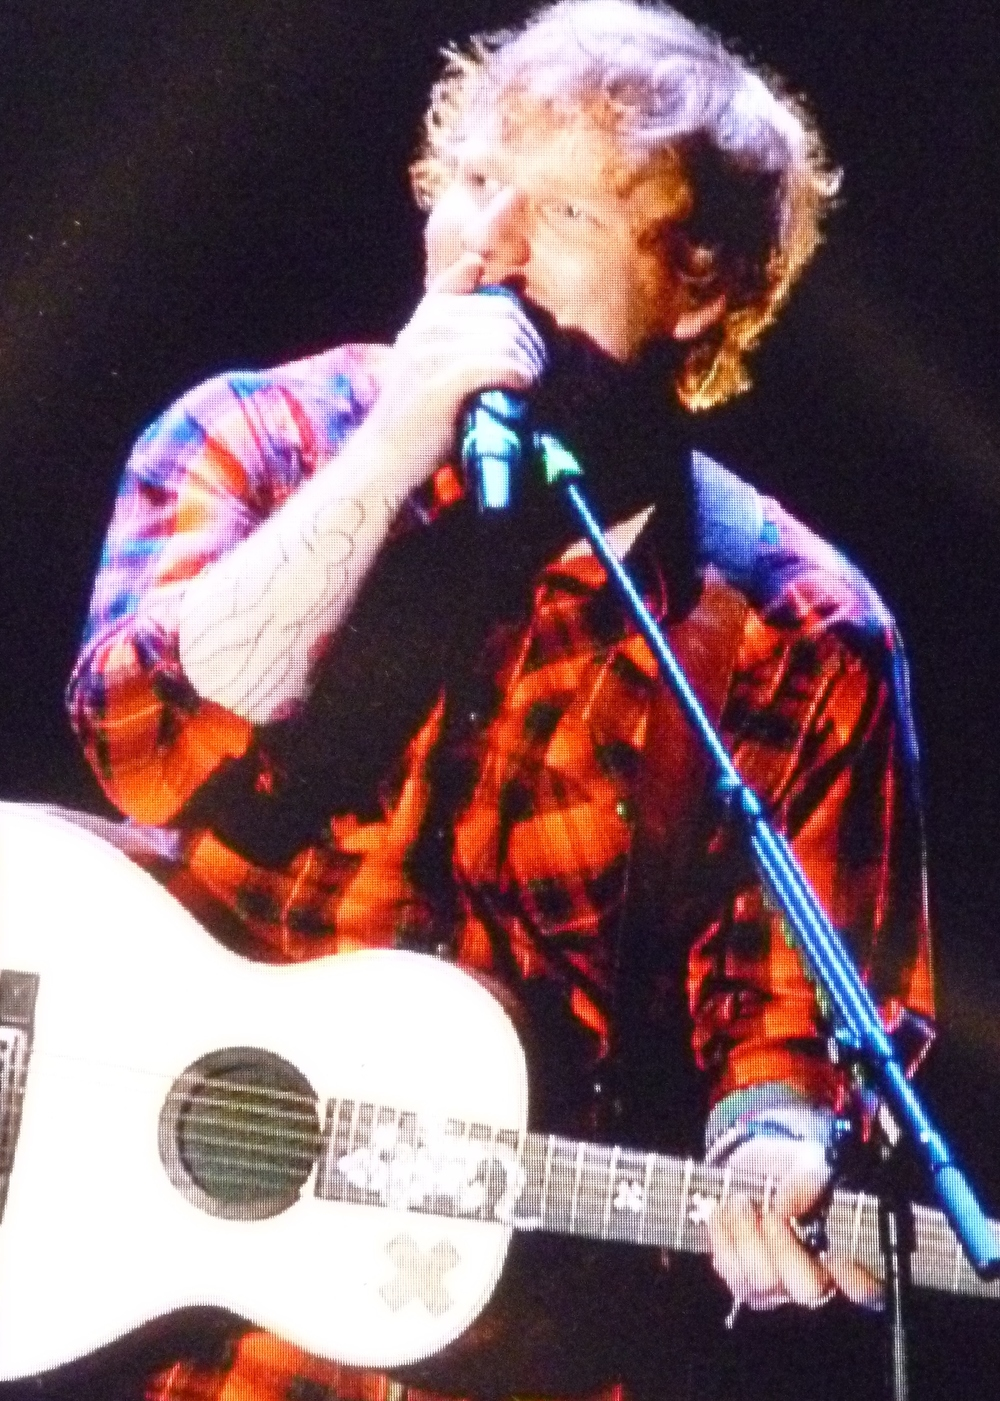 Ed Sheeran at Gillette